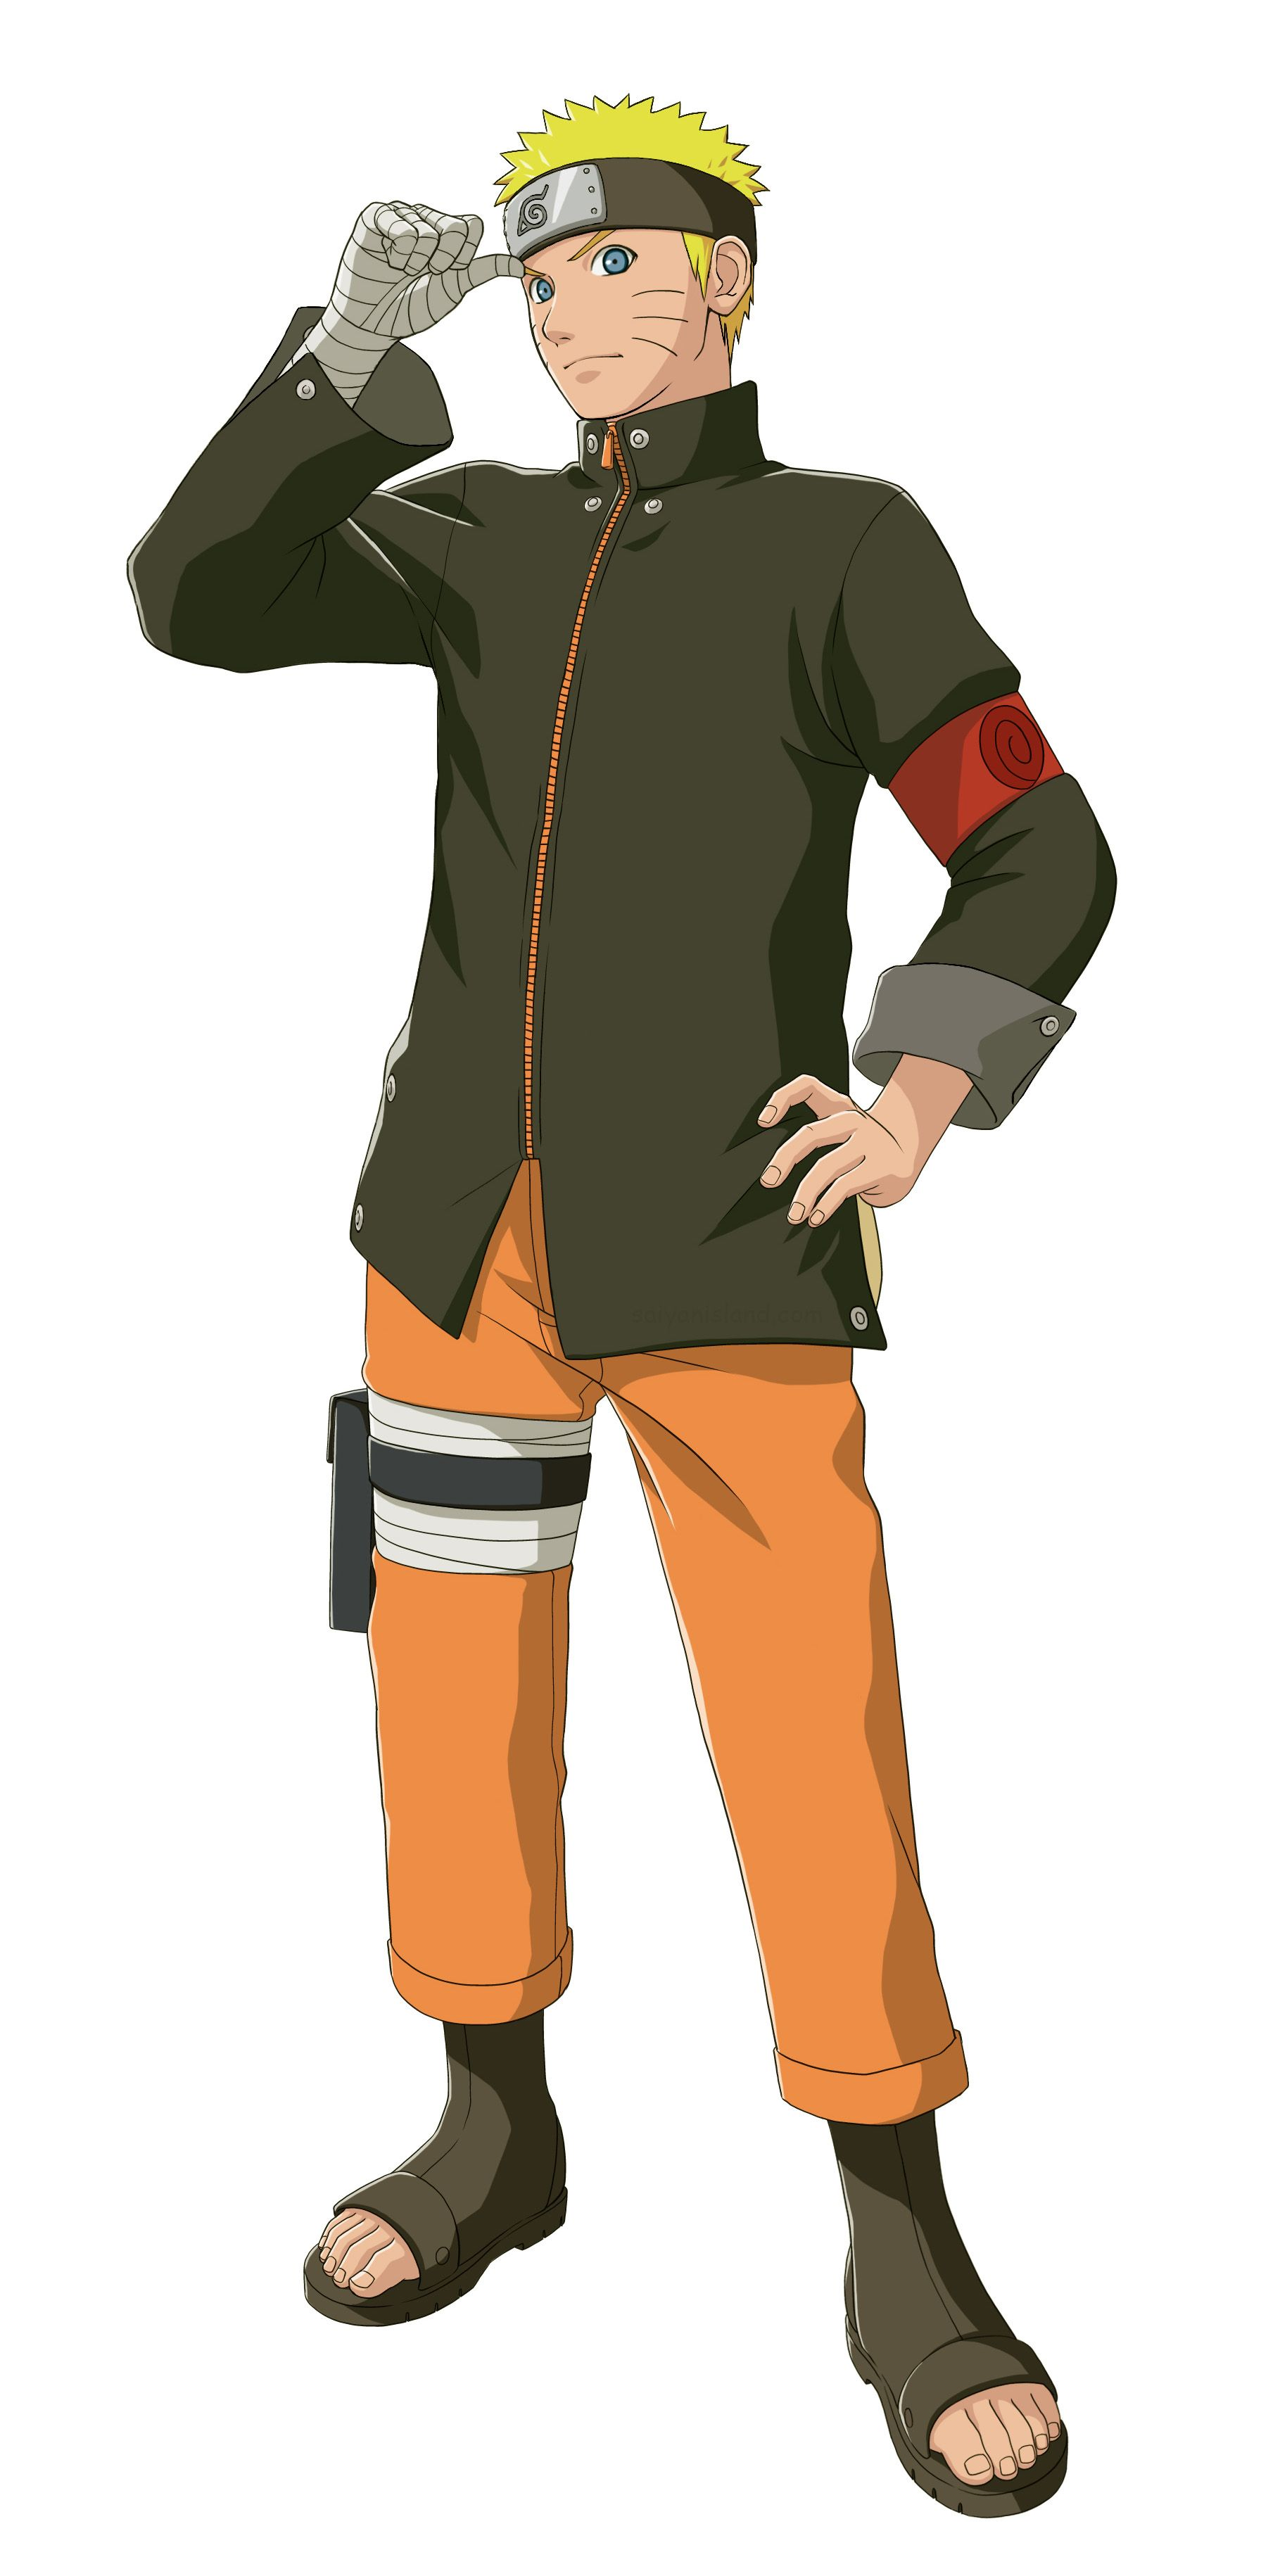 Naruto The Last Character Design Color : Naruto storm art g … pinteres…